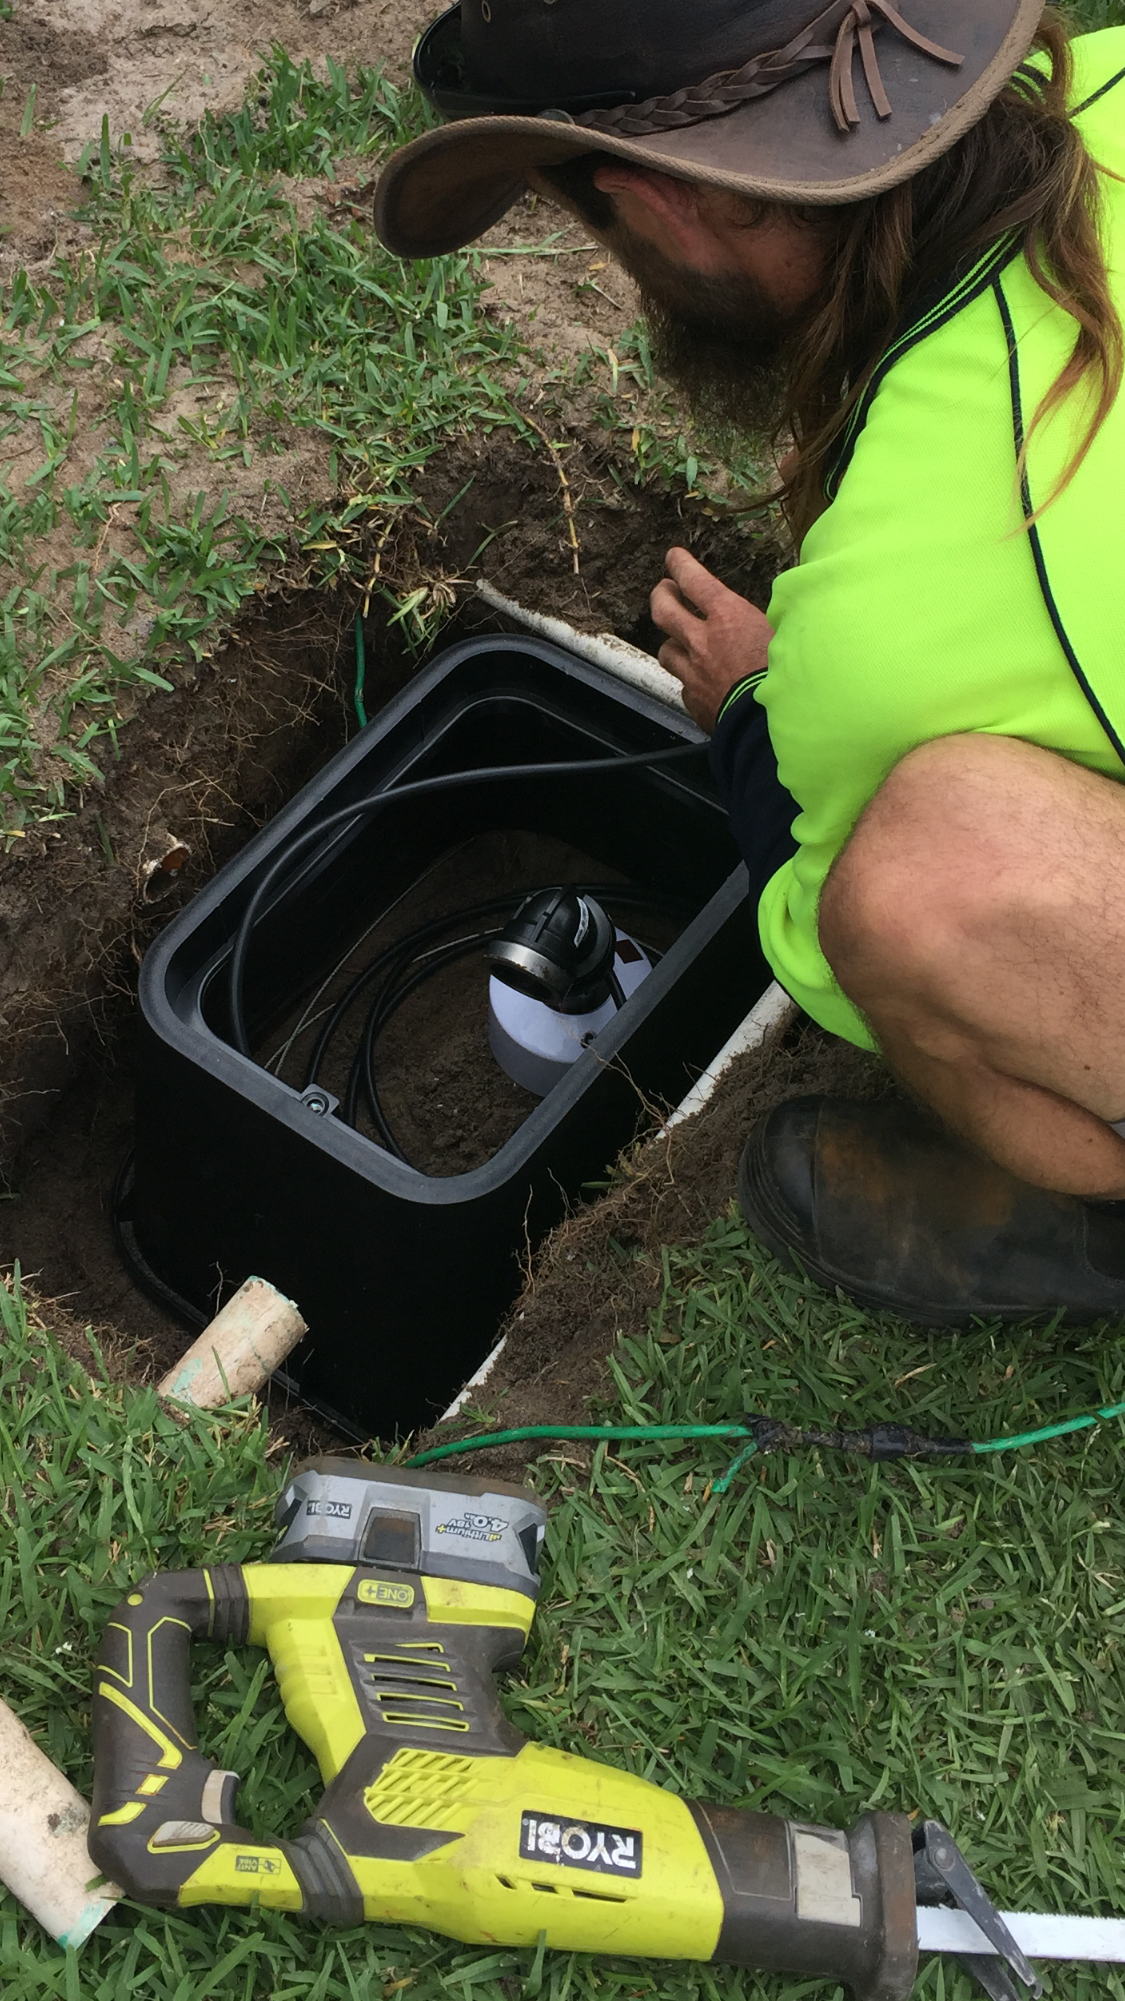 How Is A Bore Connected To Retic Virgin Bores Wiring Sprinkler Timer Box Submersible Pump Just Installed